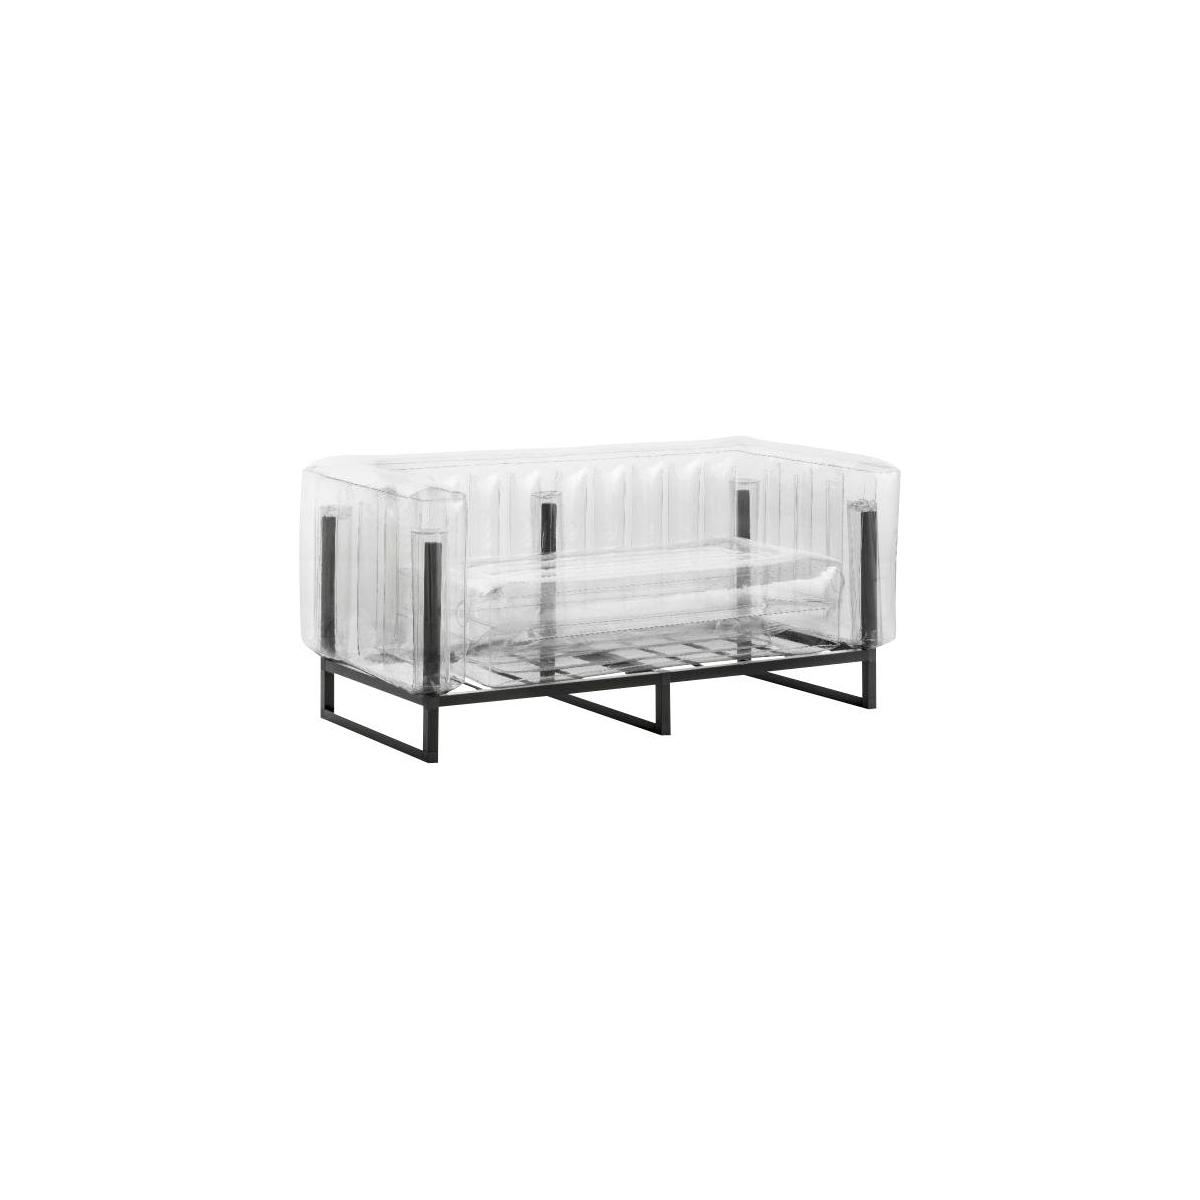 Canapé gonflable 2 places en PVC - Transparent n°1